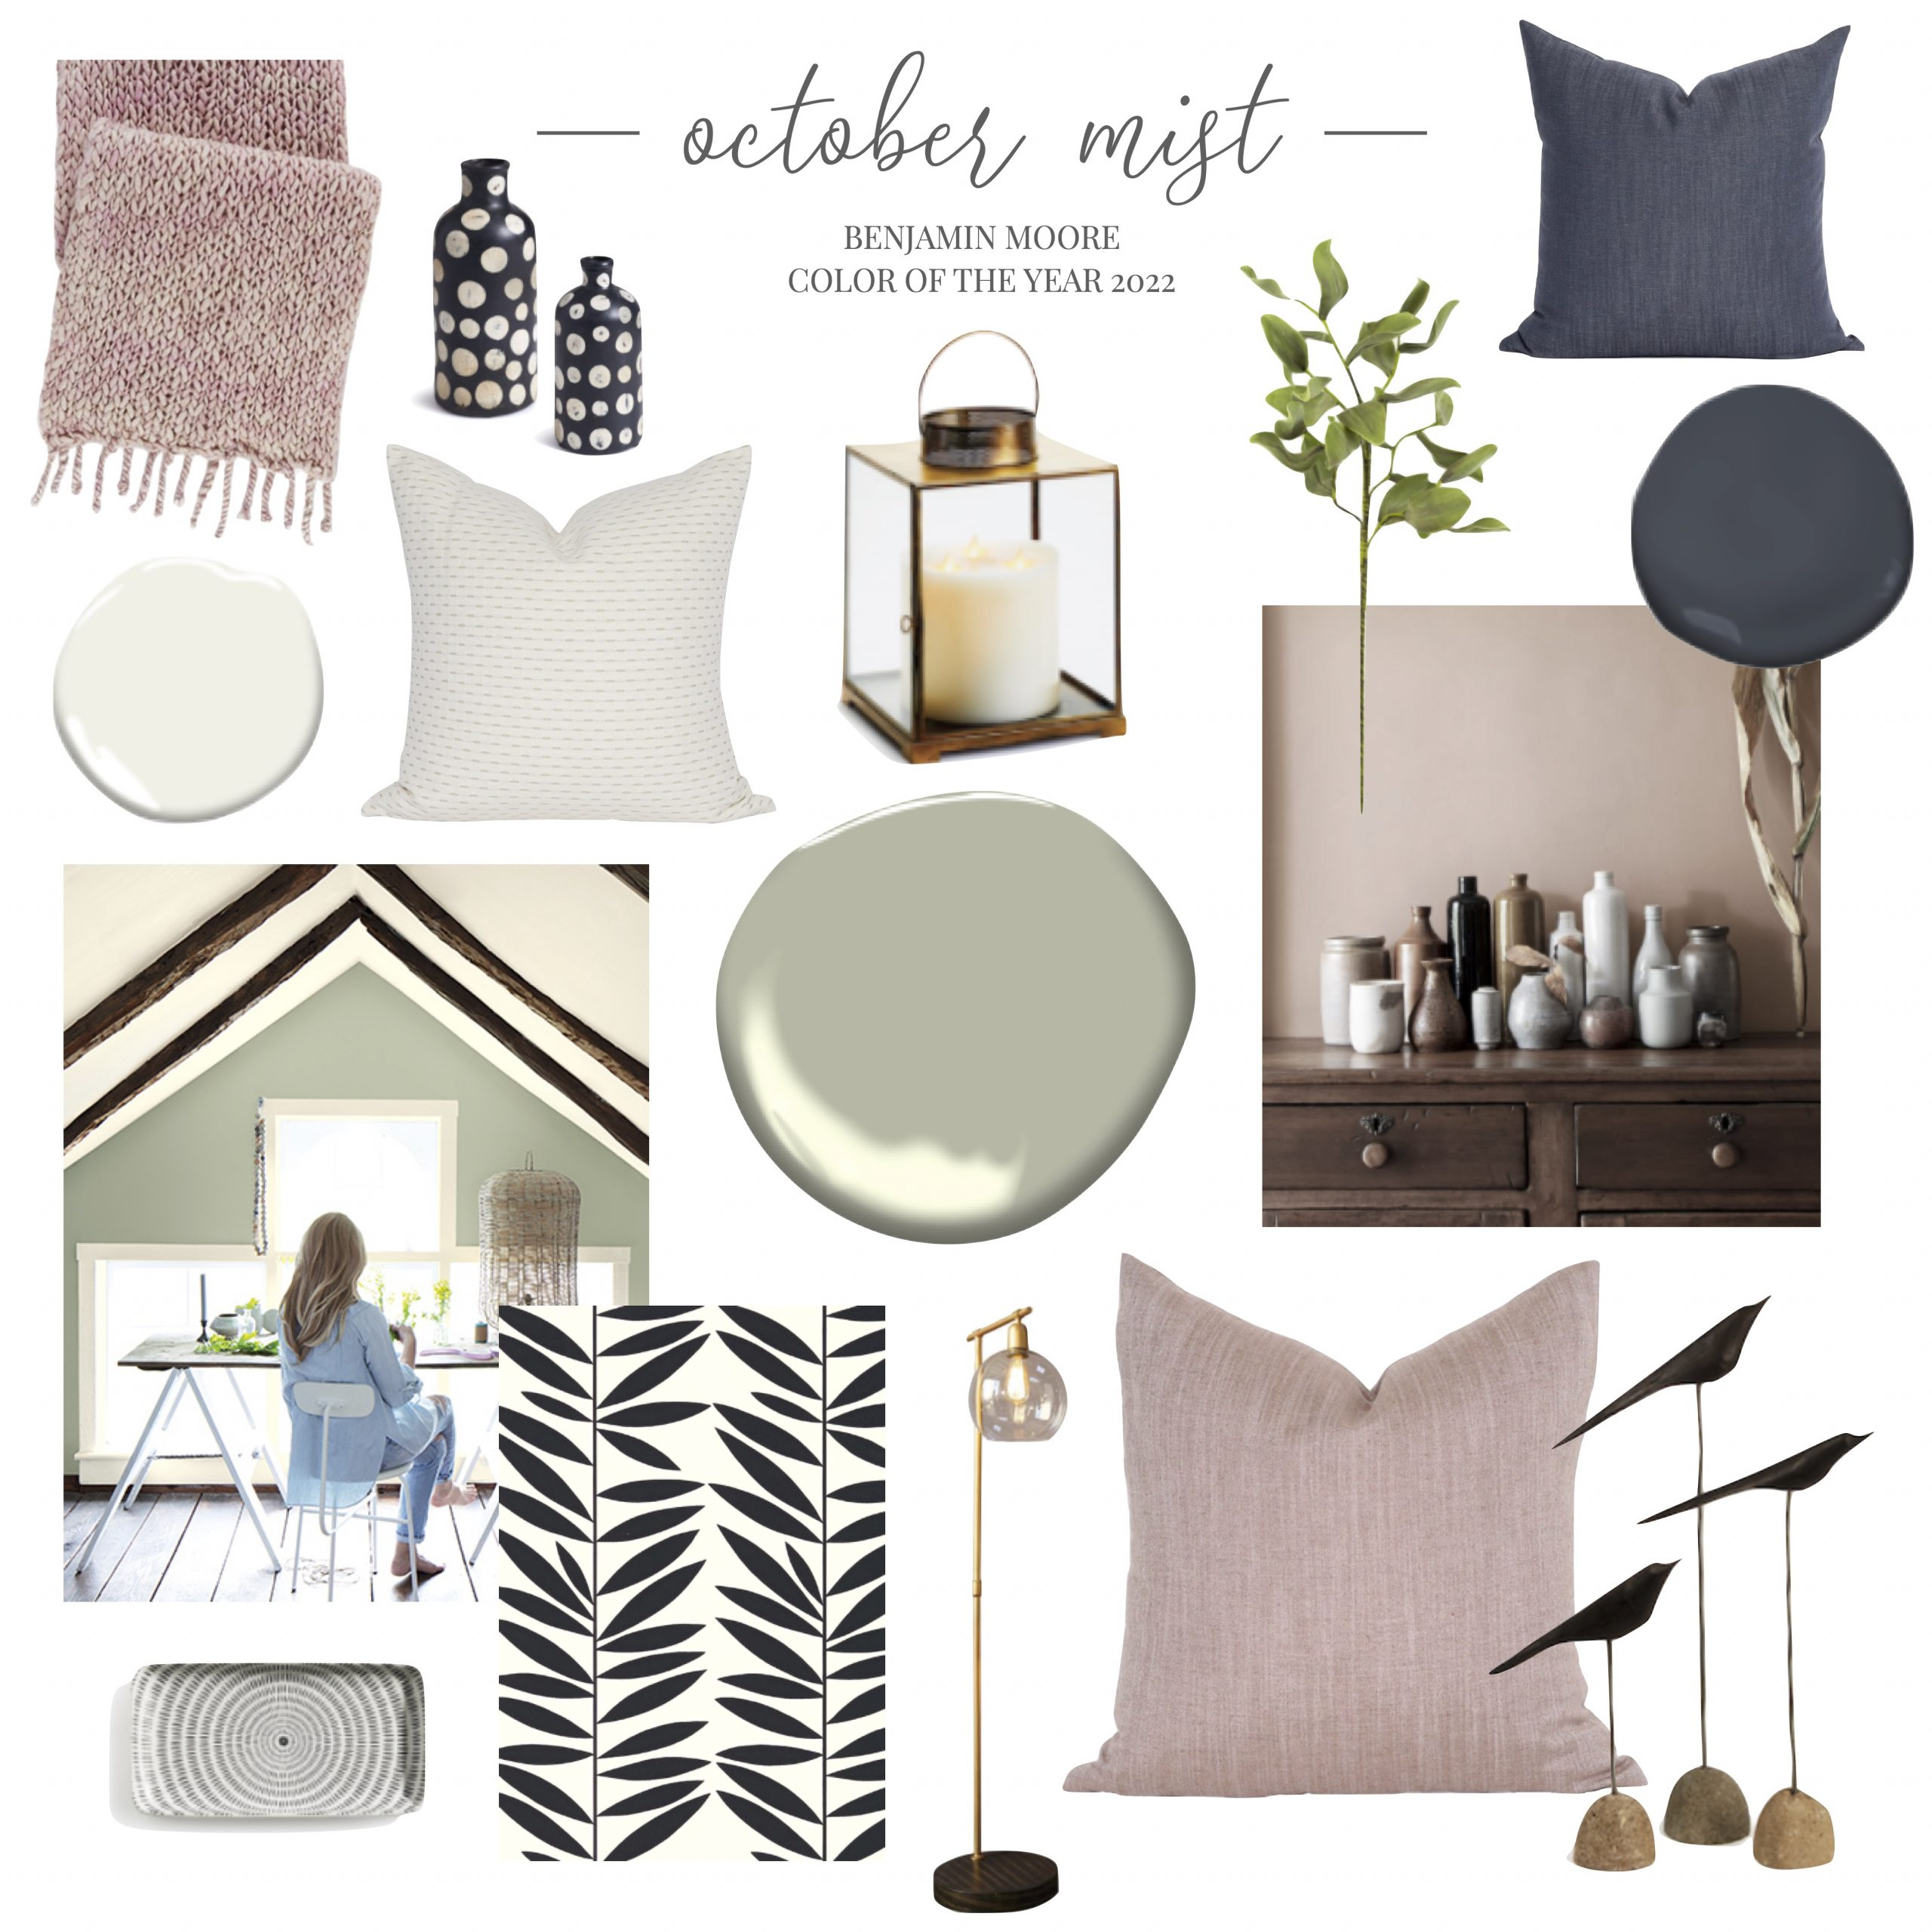 Phinery October Mist Mood Board